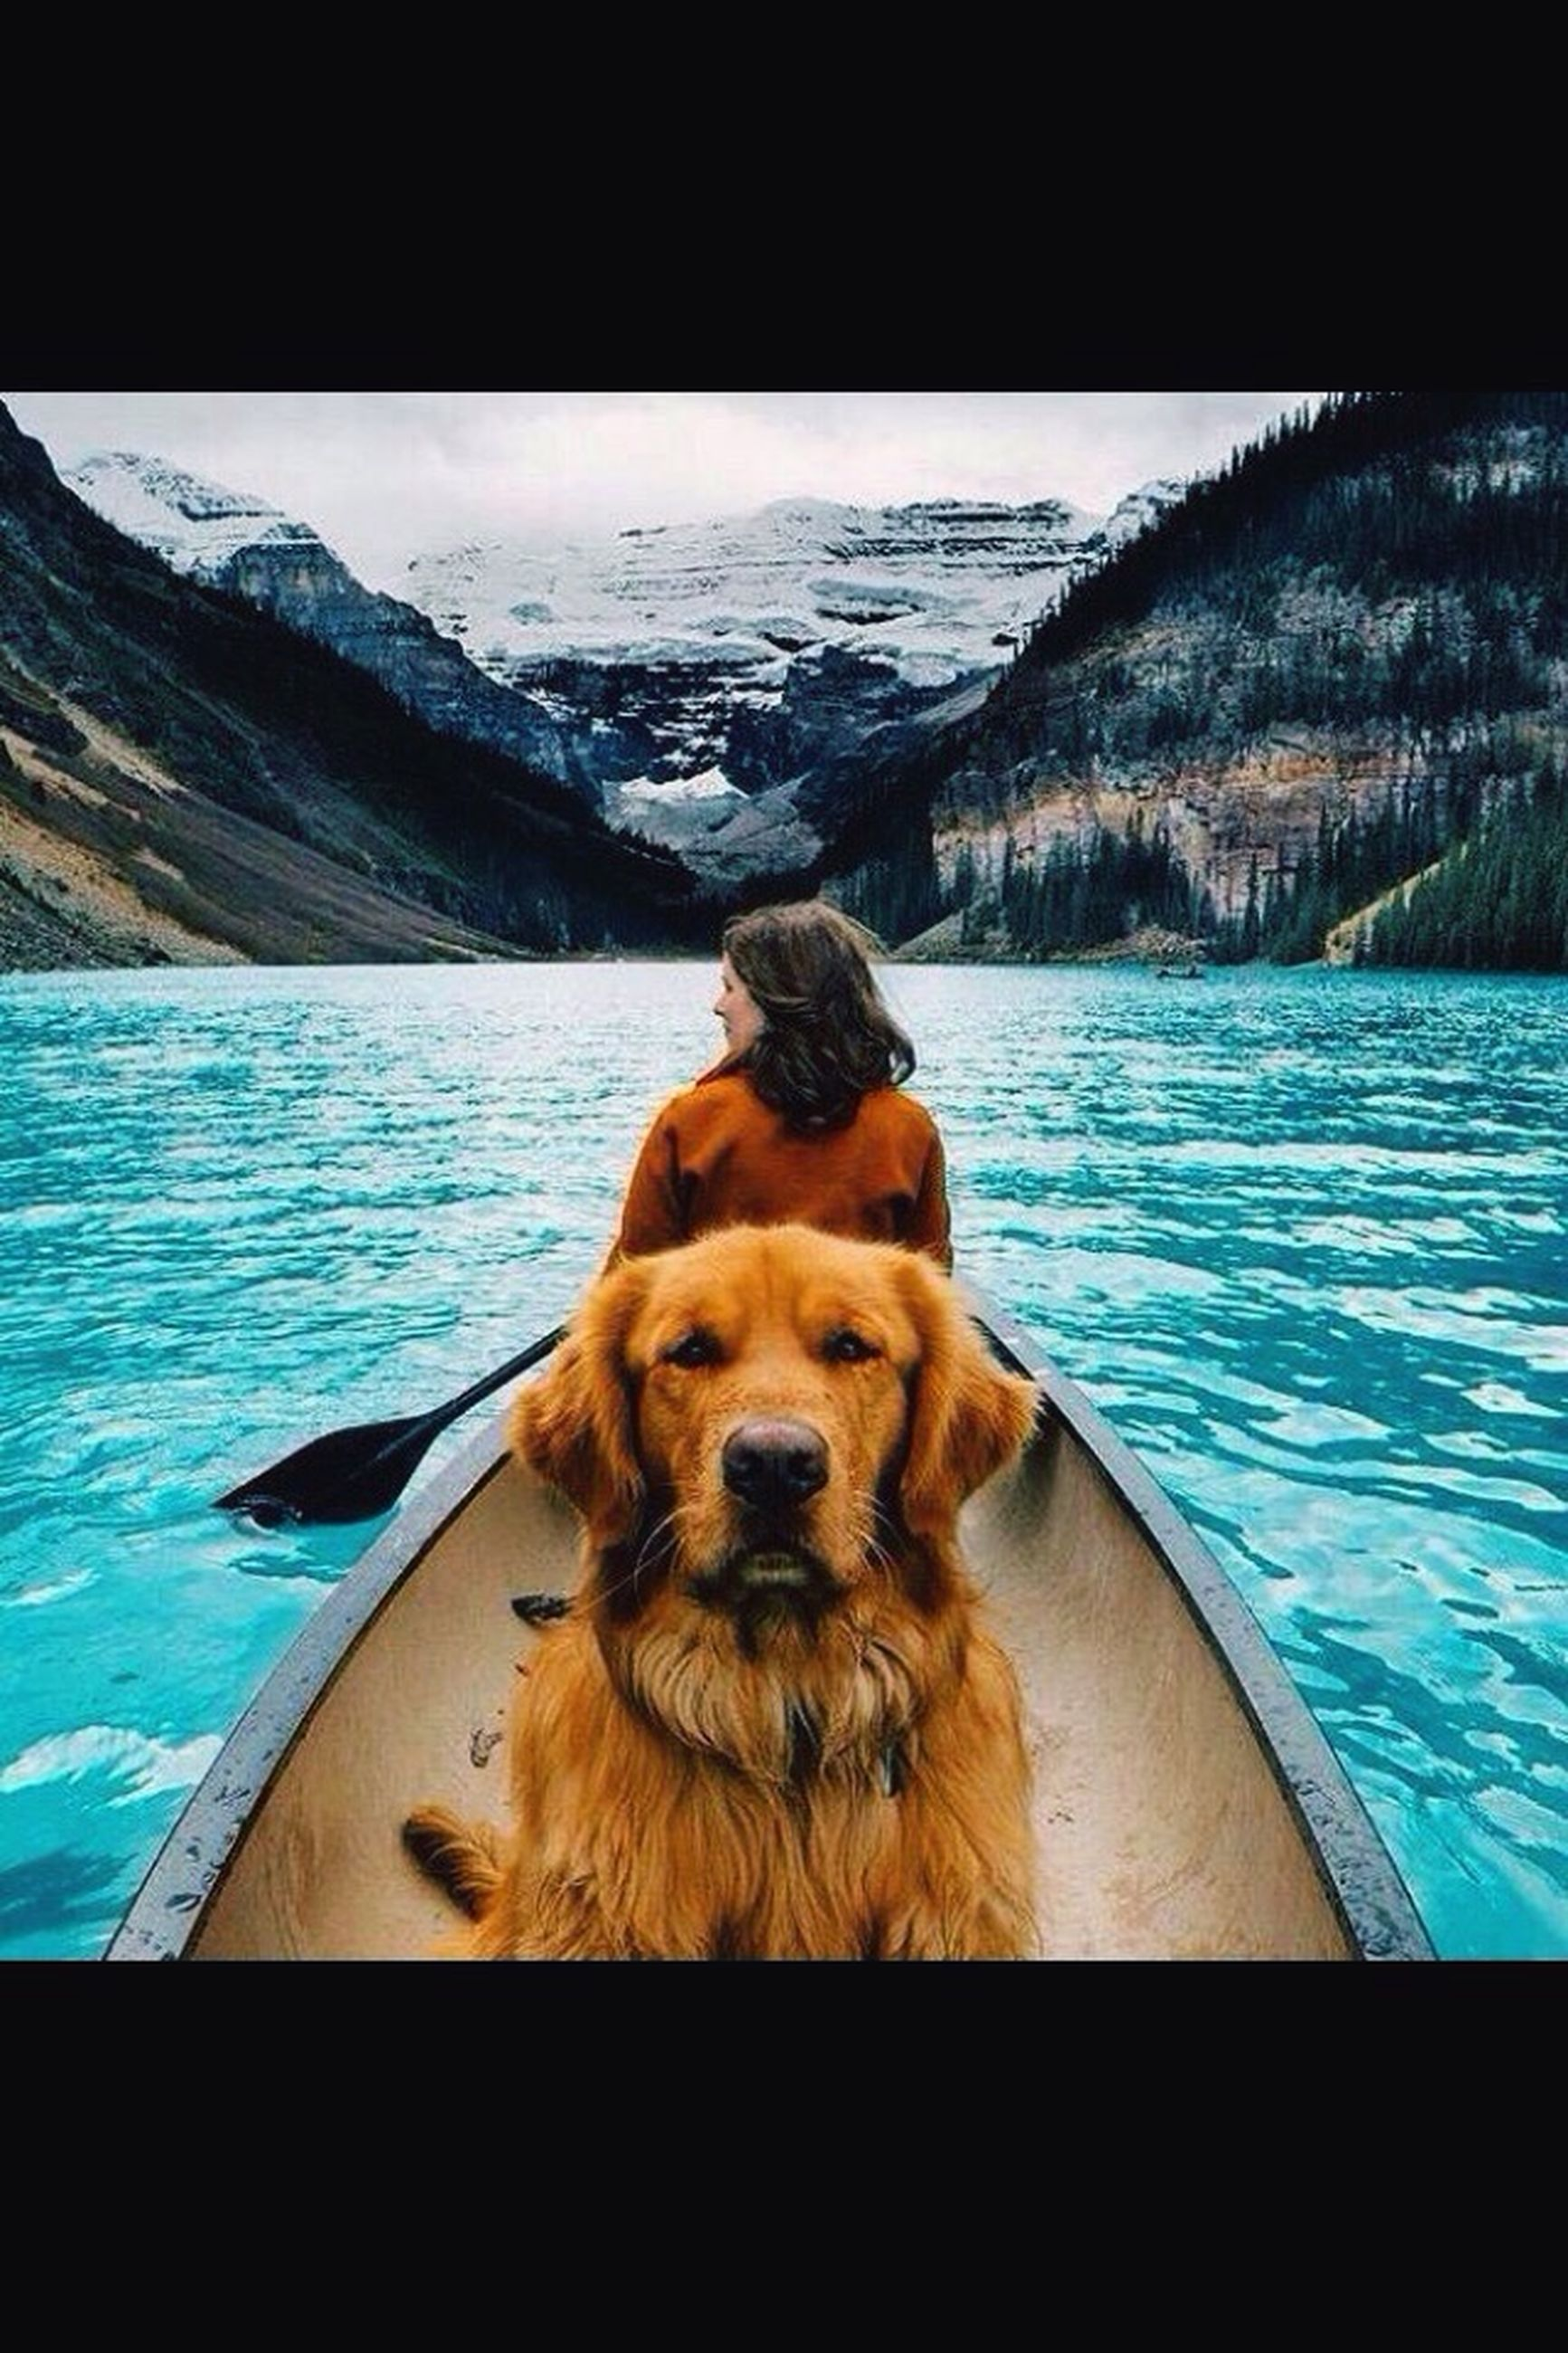 water, pets, animal themes, one animal, dog, domestic animals, mammal, lake, sitting, sky, blue, nature, relaxation, day, sea, tranquil scene, reflection, transfer print, tranquility, no people